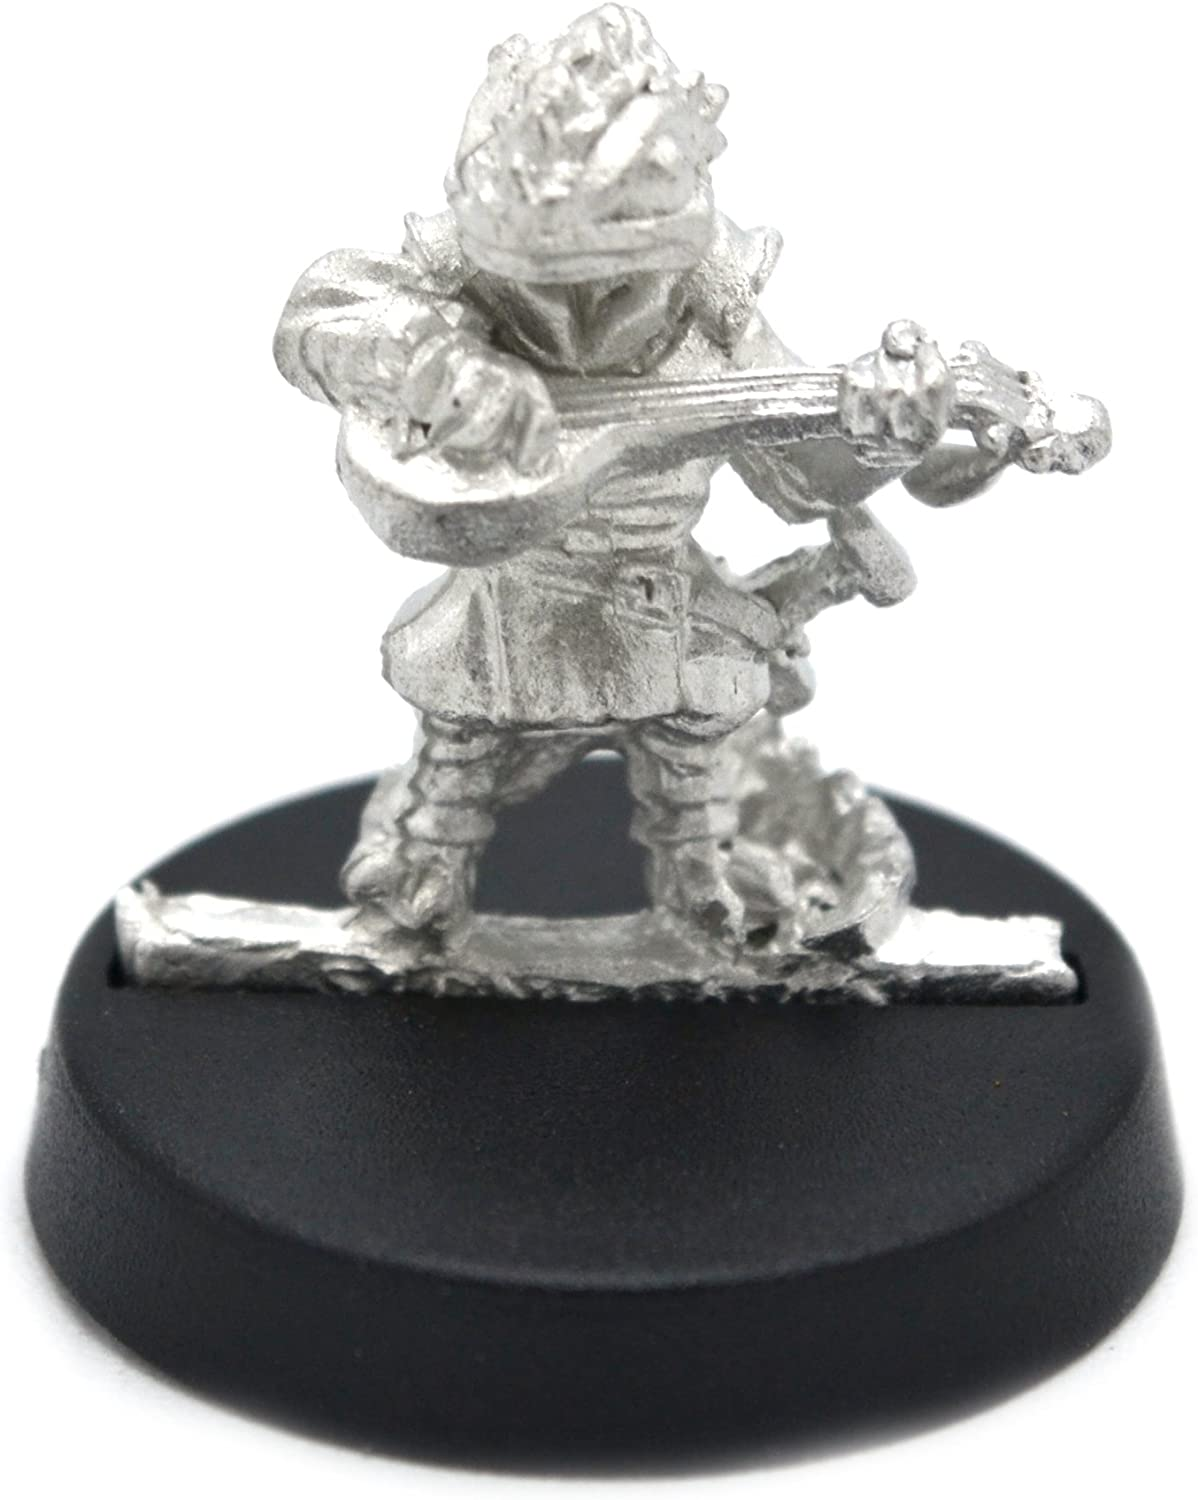 Stonehaven Male Kobold Fighter Miniature Figure for 28mm Scale Table Top War Games Made in US